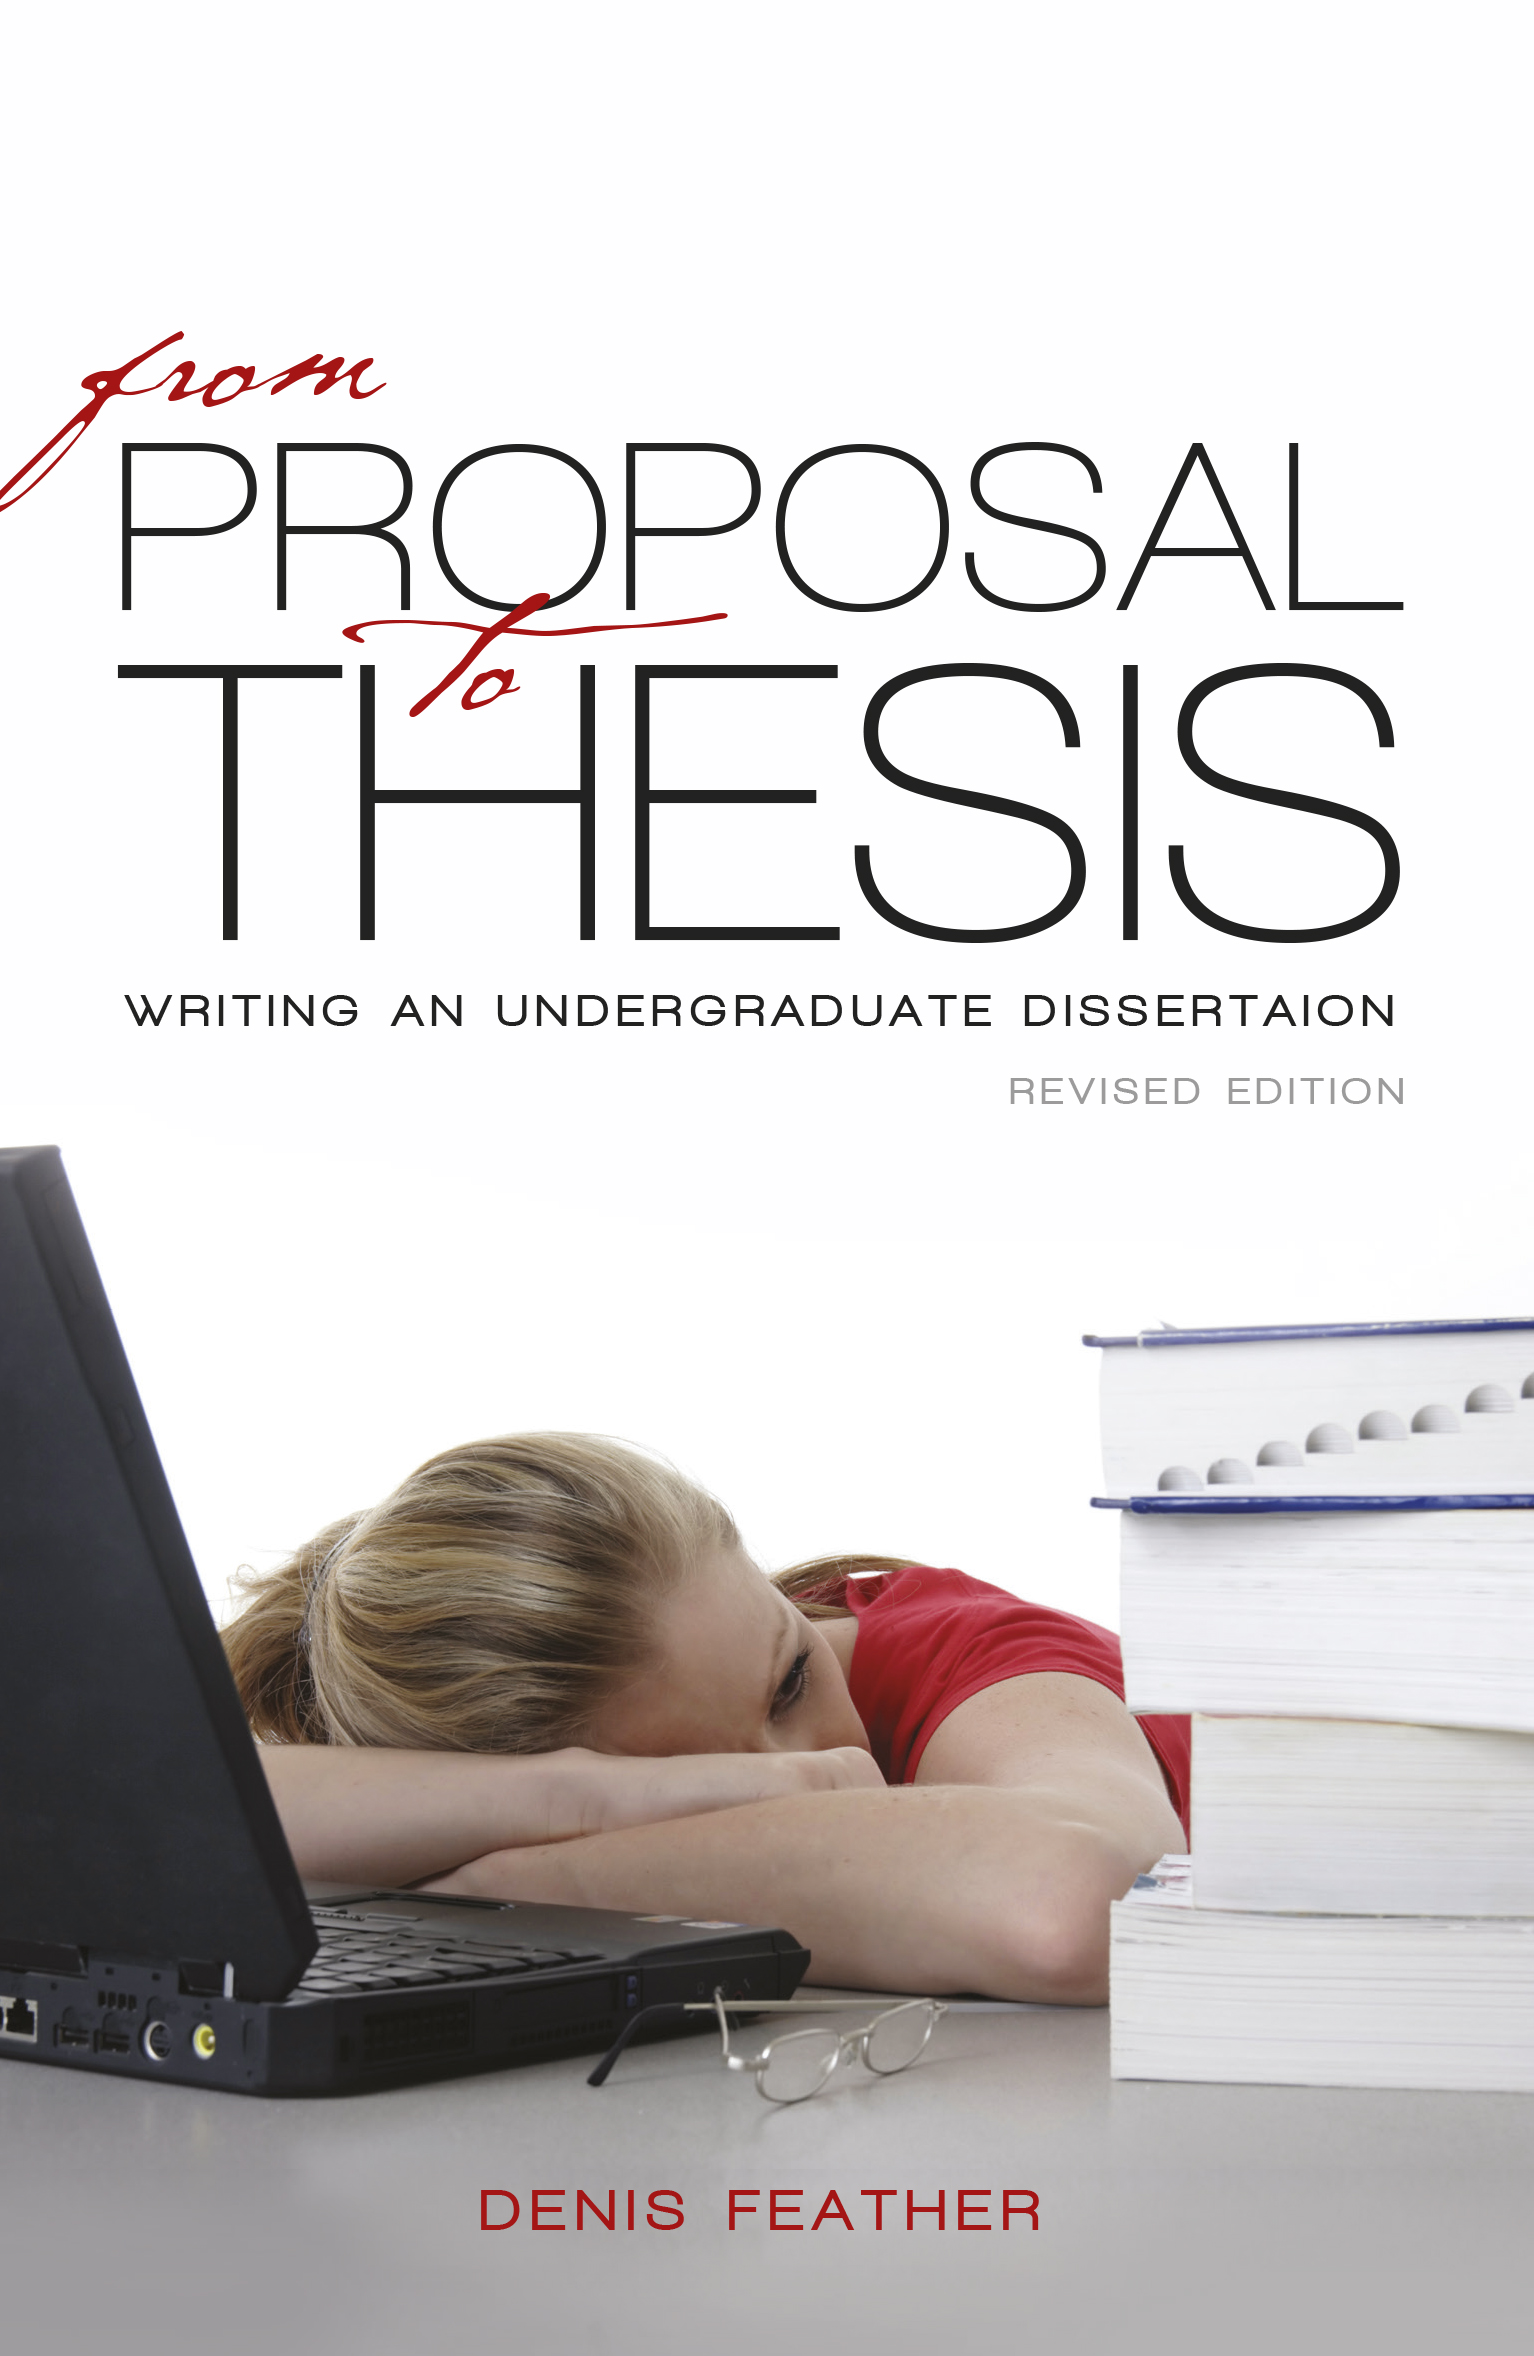 writing undergraduate thesis Undergraduate writing what good writers know write well in any discipline with these five core strategies practiced by expert writers writing handouts.